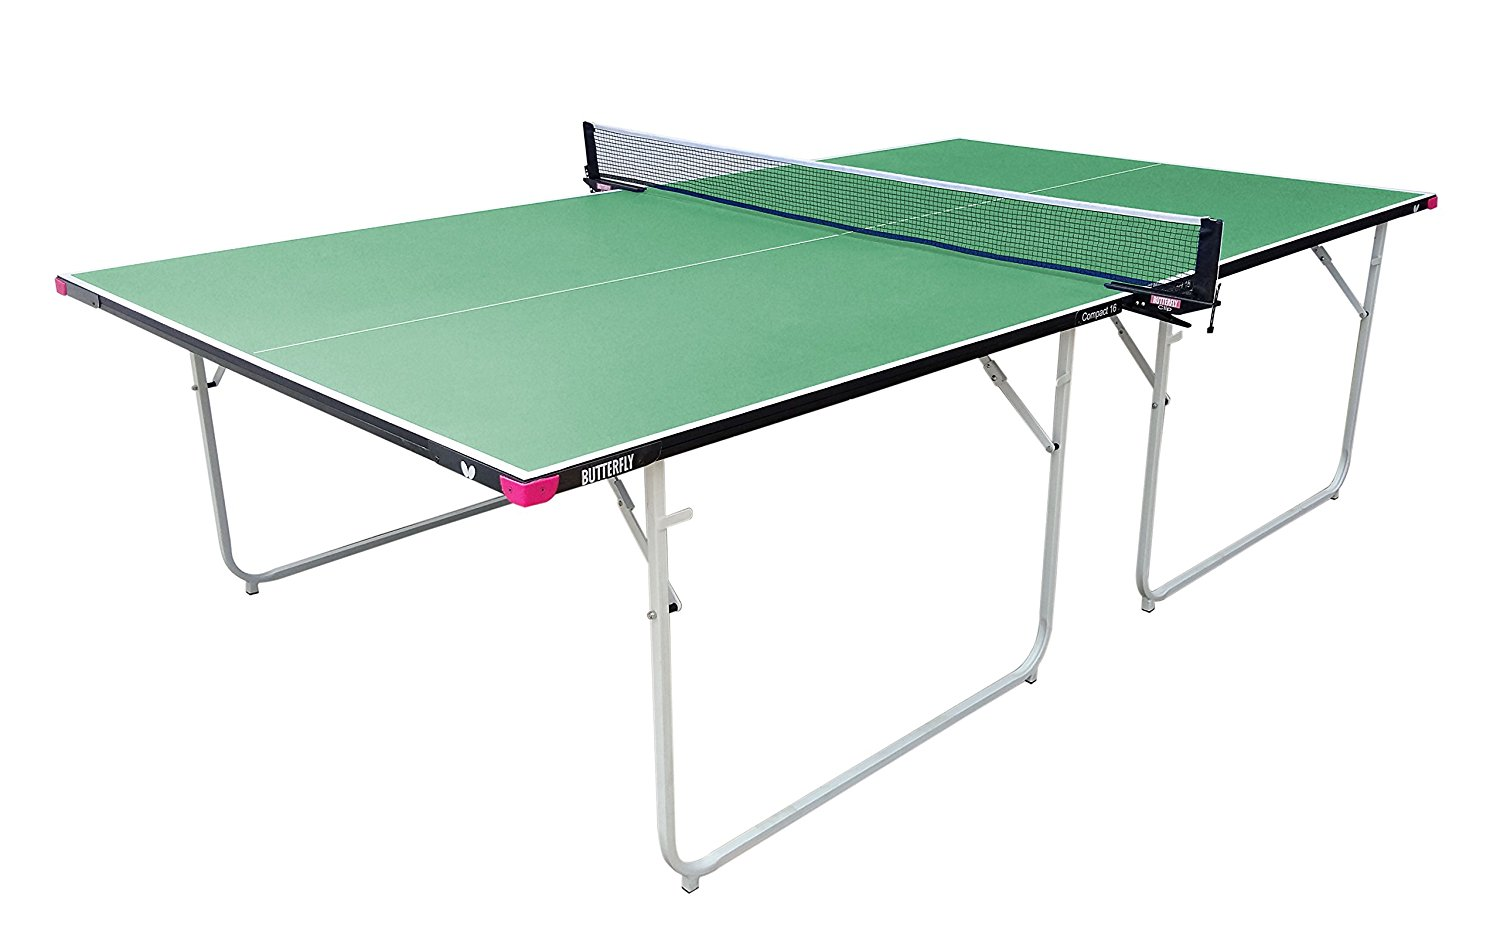 Brilliant The 11 Best Ping Pong Tables Of 2019 Indoor Outdoor Reviews Home Interior And Landscaping Elinuenasavecom